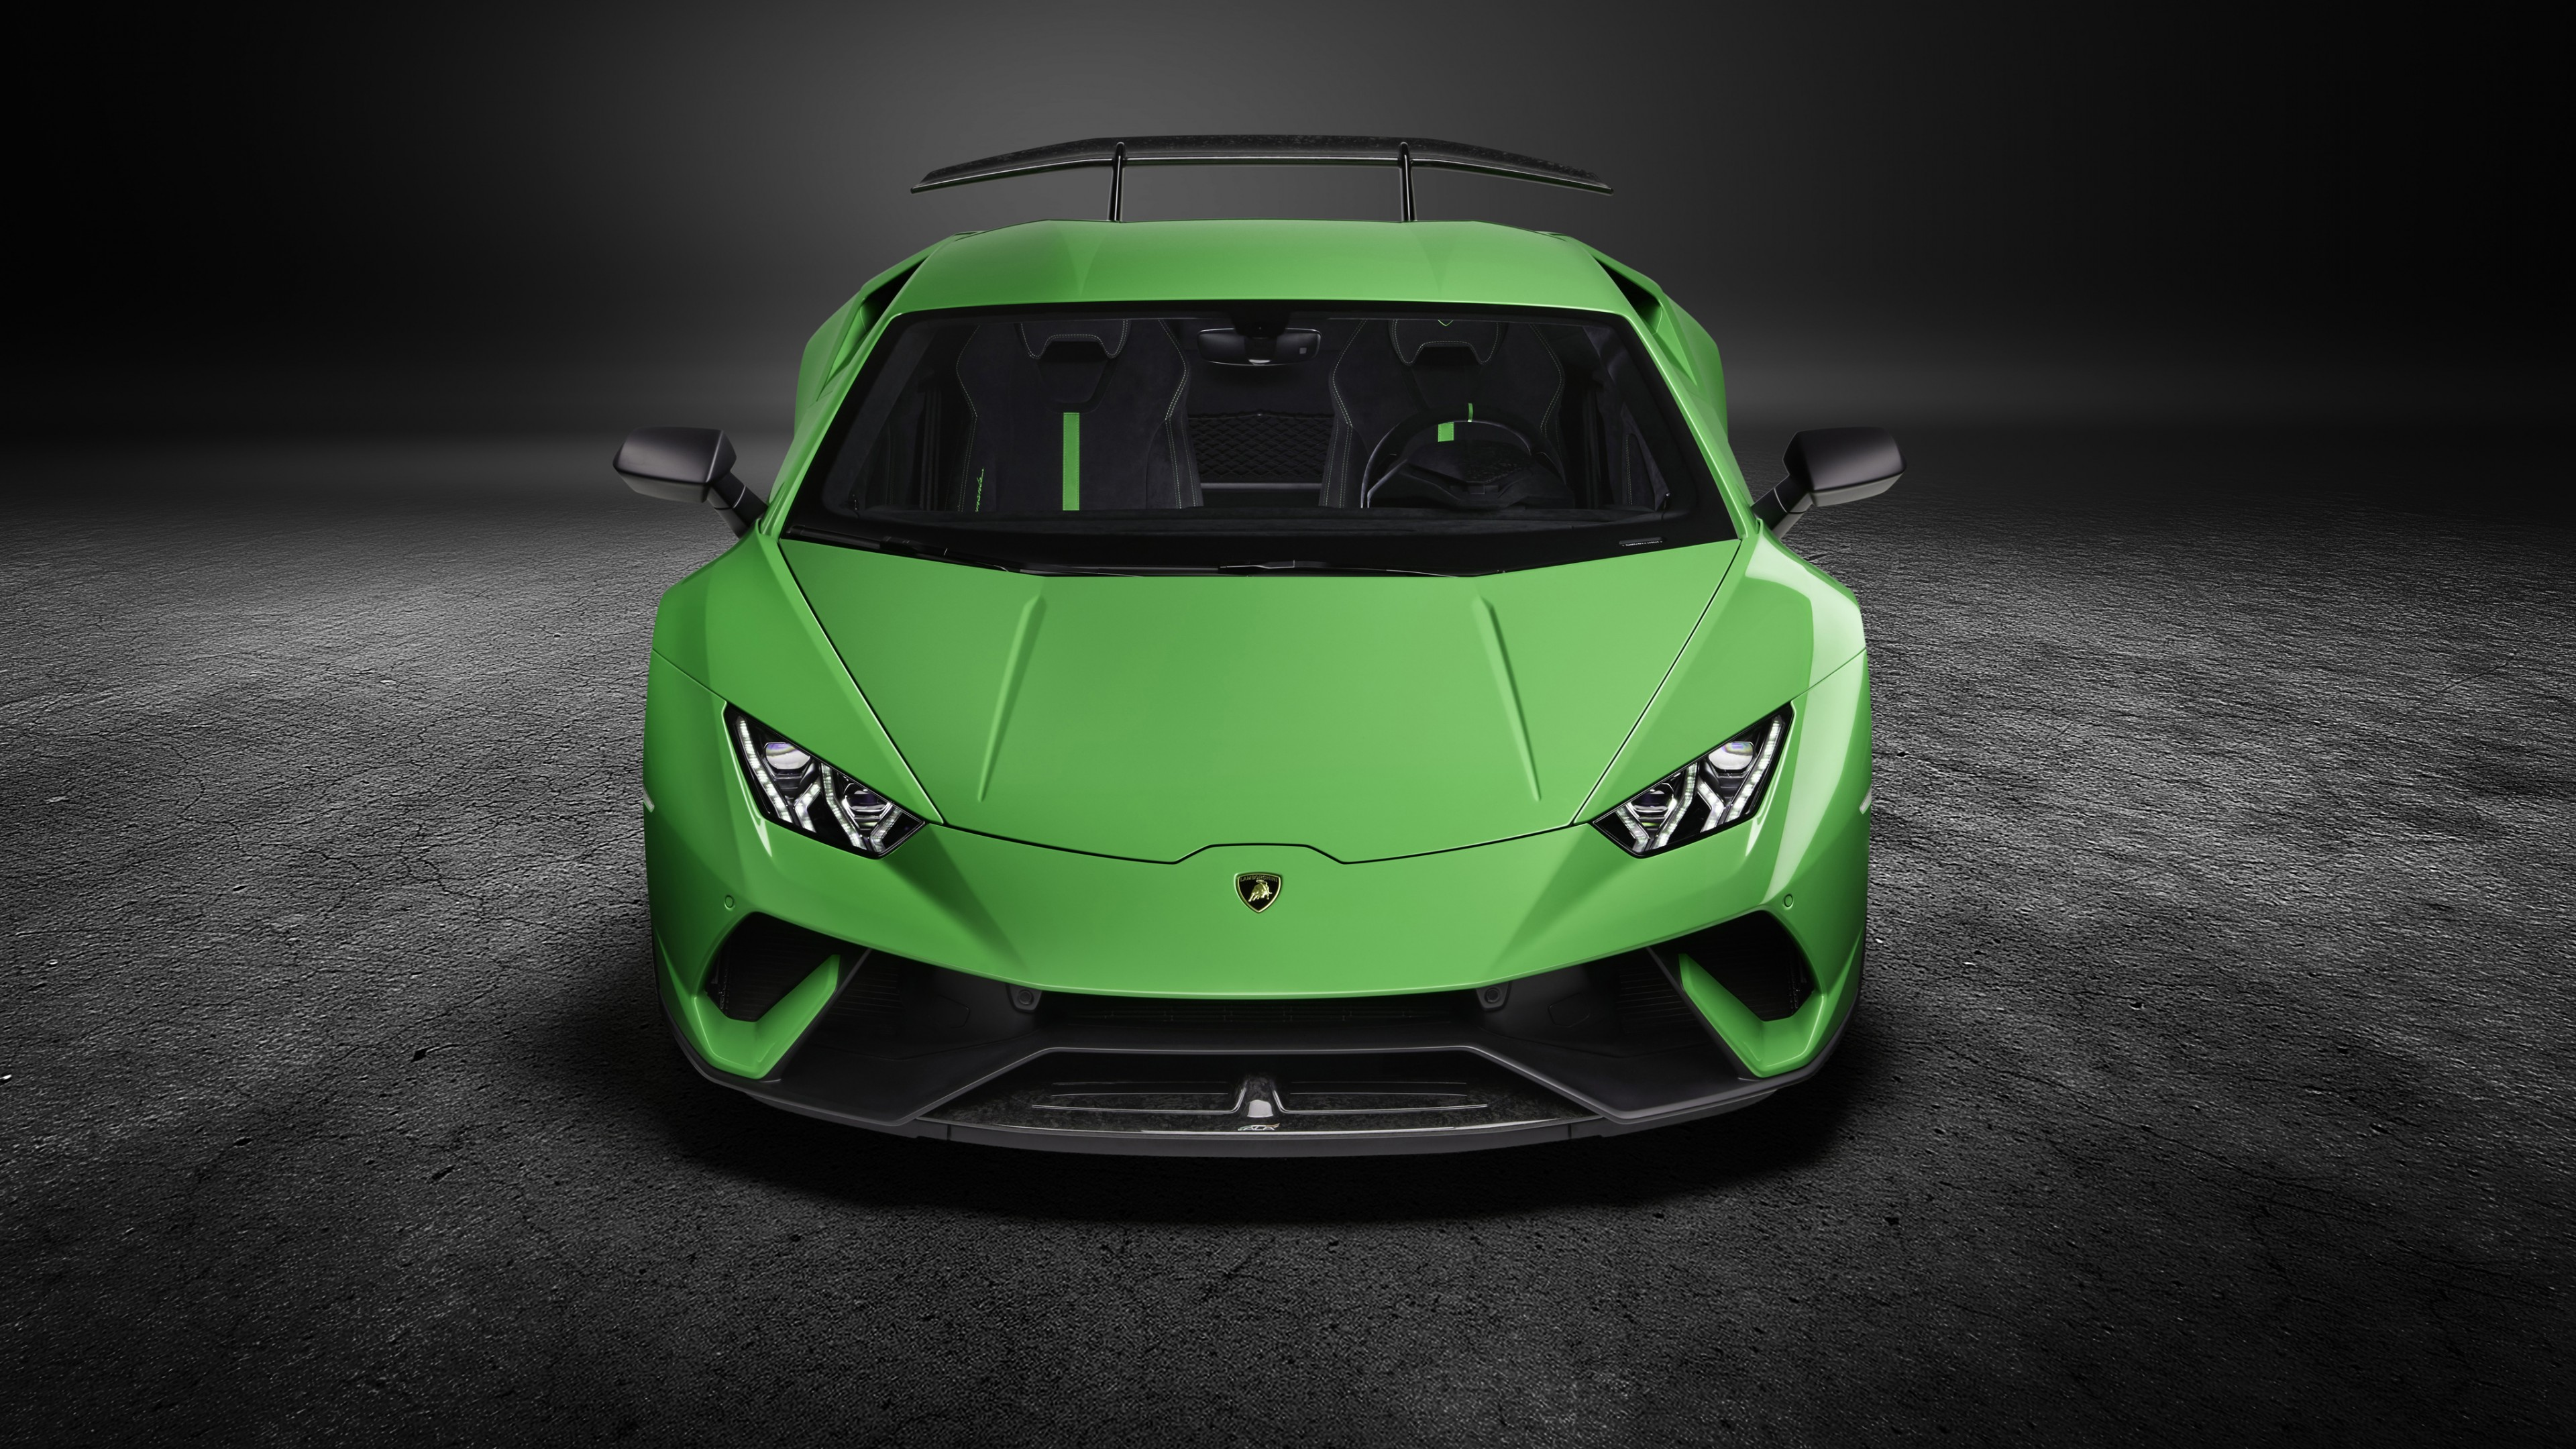 lamborghini huracan performante 2017 4k wallpaper hd car wallpapers. Black Bedroom Furniture Sets. Home Design Ideas